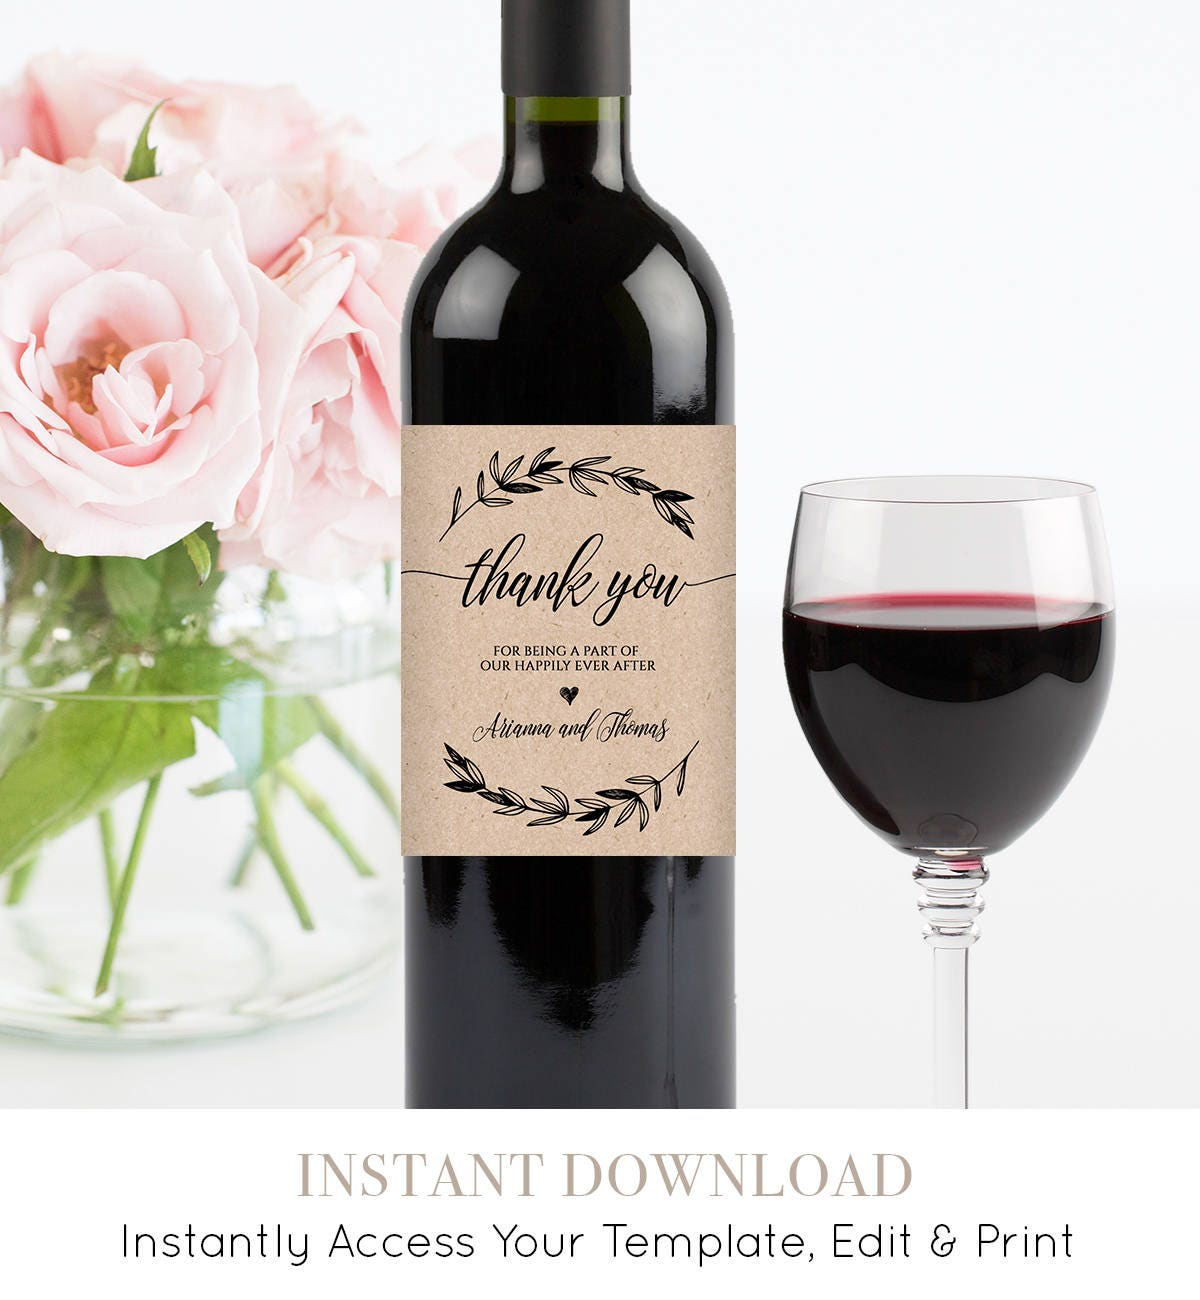 wedding wine bottle label printable wine label template 100 editable wine wedding favor. Black Bedroom Furniture Sets. Home Design Ideas